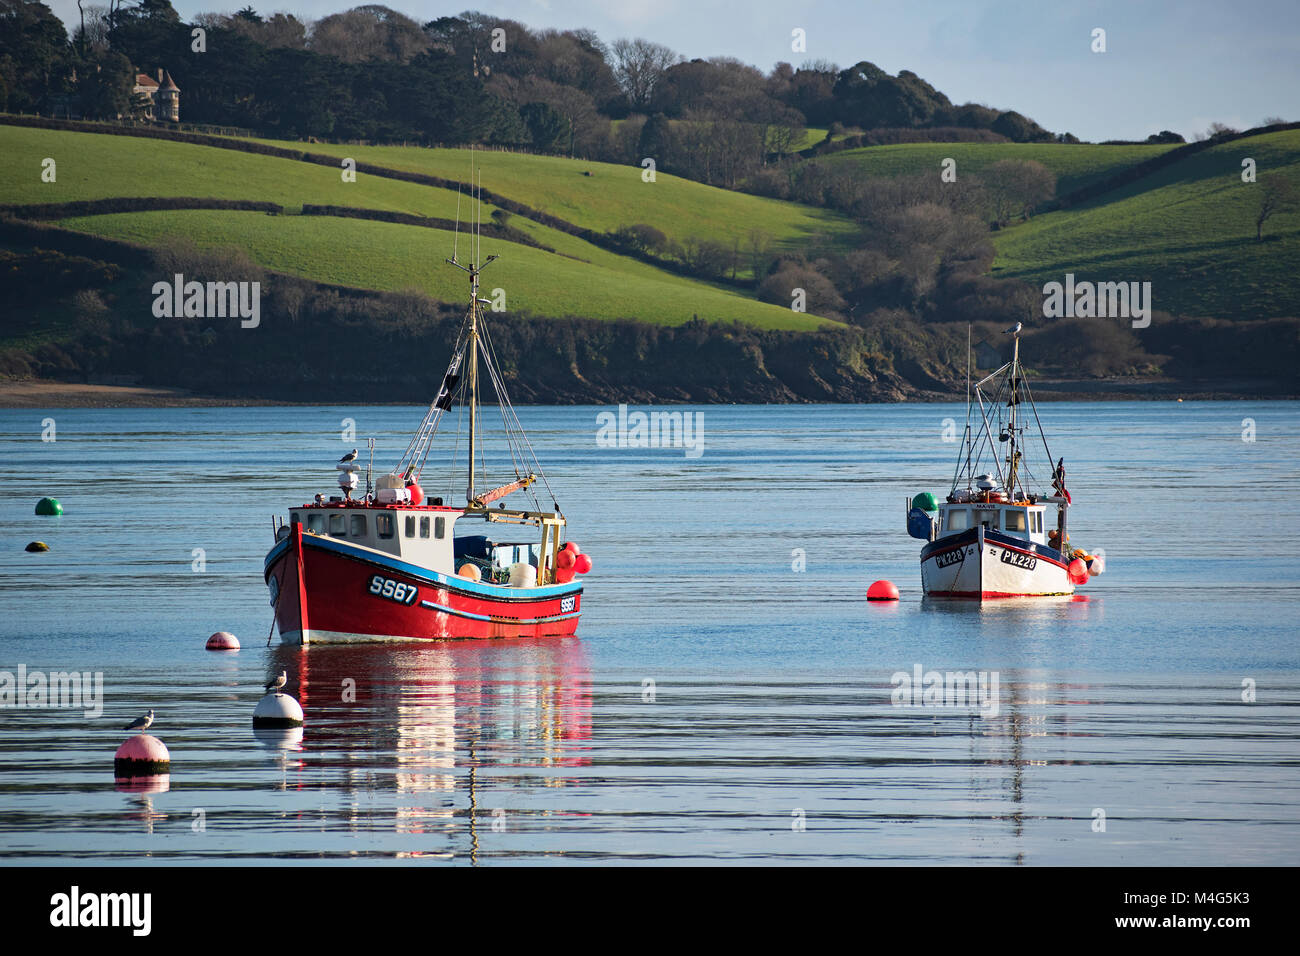 Helford river, Cornwall, UK. 16th Feb 2018. A lovely calm amd sunny day for the Cornish fishing boats on the Helford - Stock Image